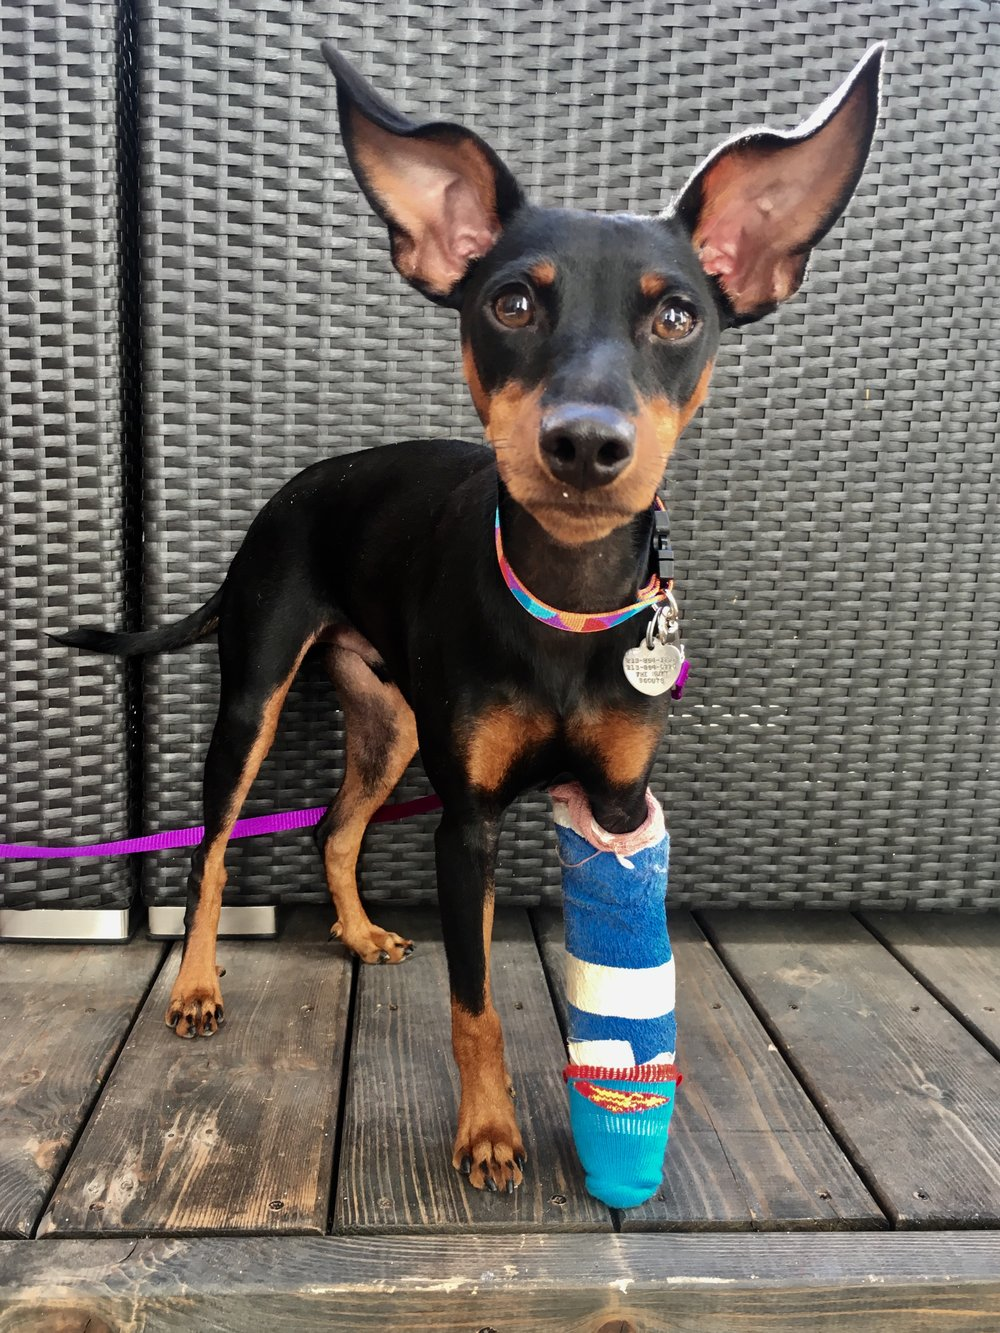 Meet Winston - This sweetie is 6 months old. He is a Manchester Terrier or Min Pin mix. Winston weighs 16 pounds and is great with other dogs. He loves kids and loves to play. He is incredibly smart. Great for an active family with a lot of love to give. Winston is still being potty trained and will be neutered soon. His little leg is healing from a break but doesn't slow him down one bit!